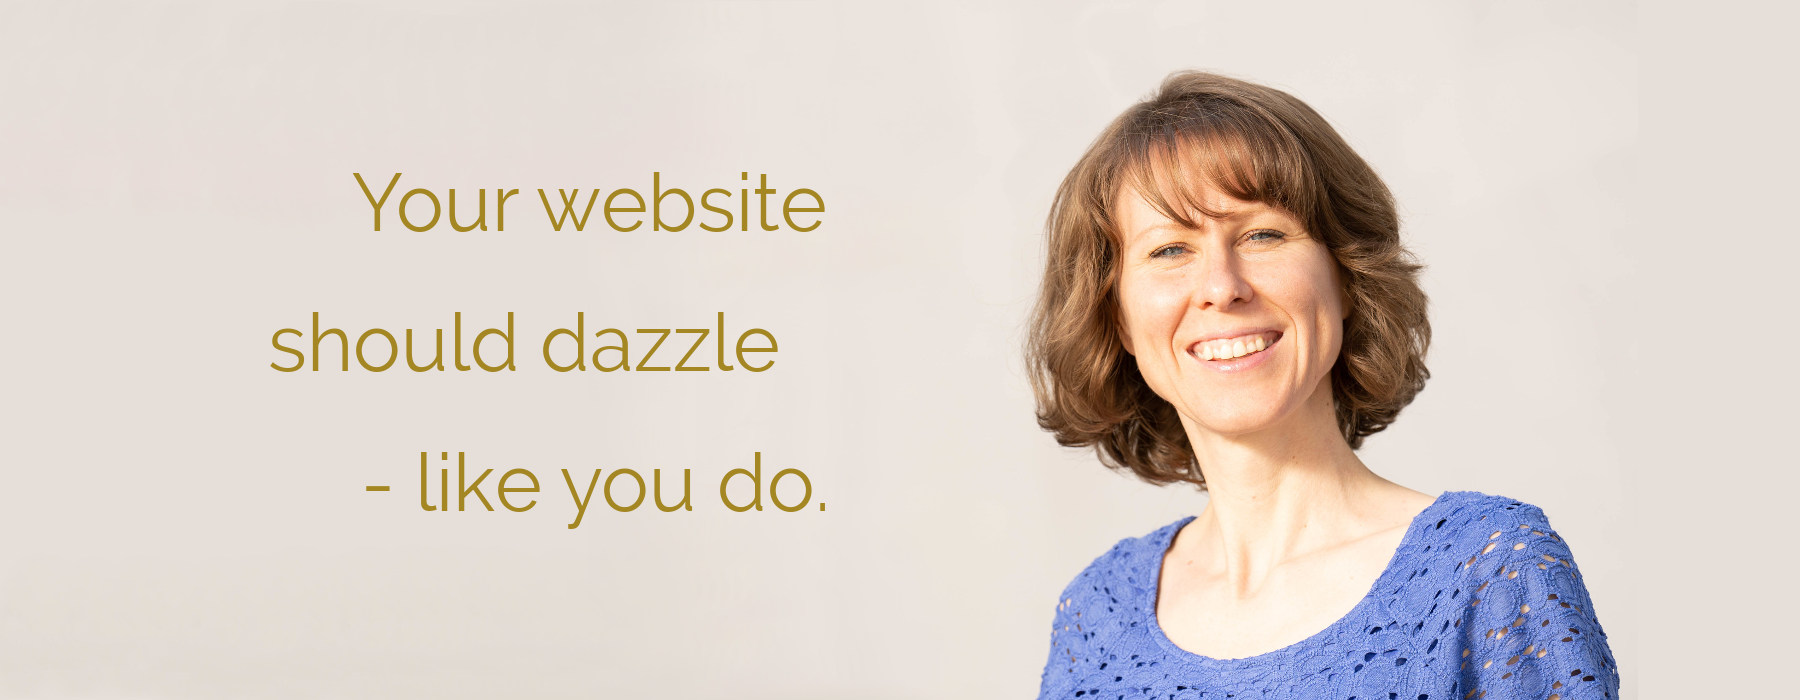 Your website should dazzle - like you do.